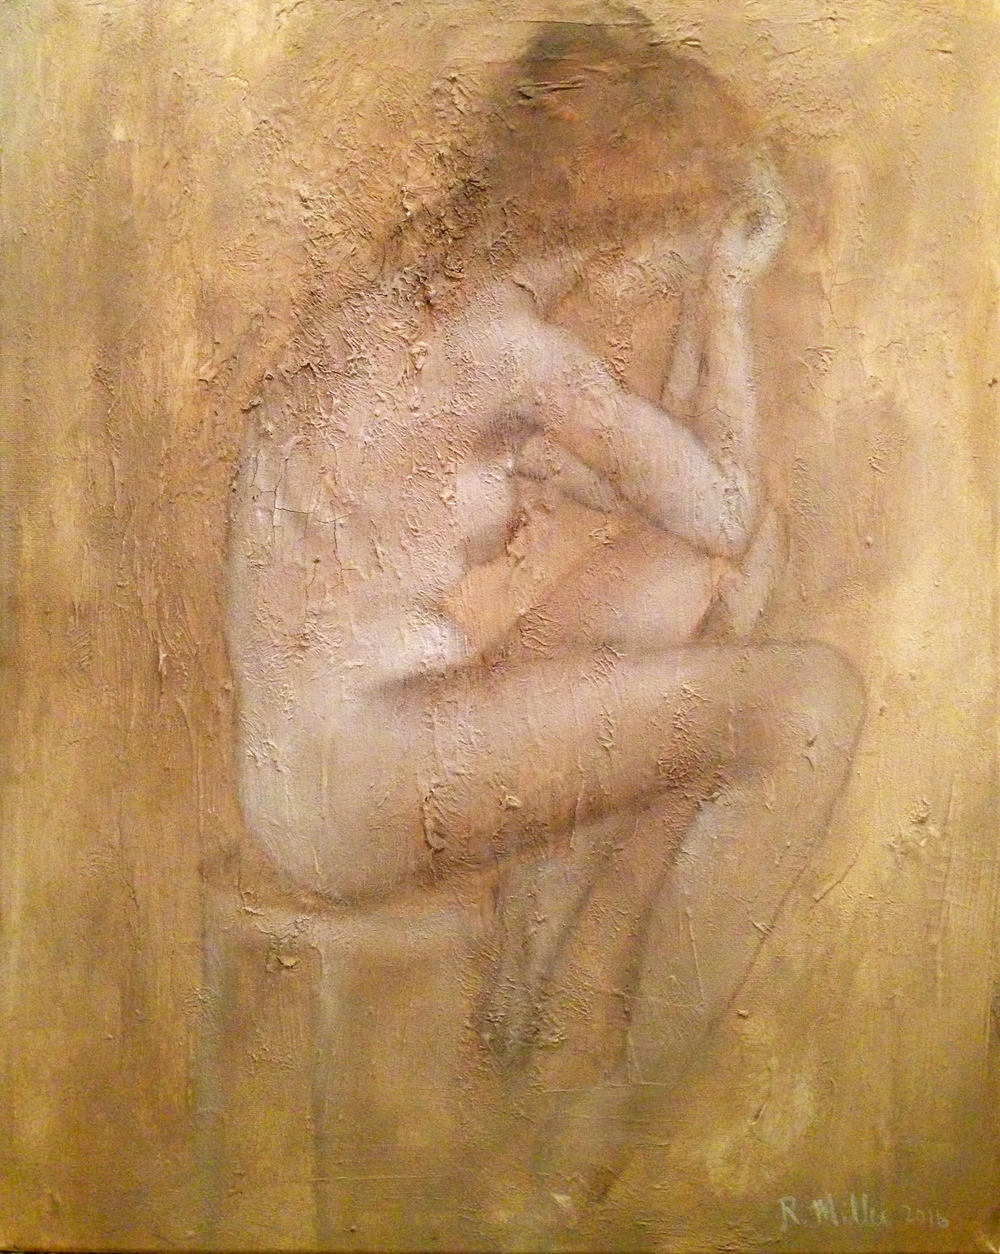 La Penseuse, 2016   Mixed media on canvas